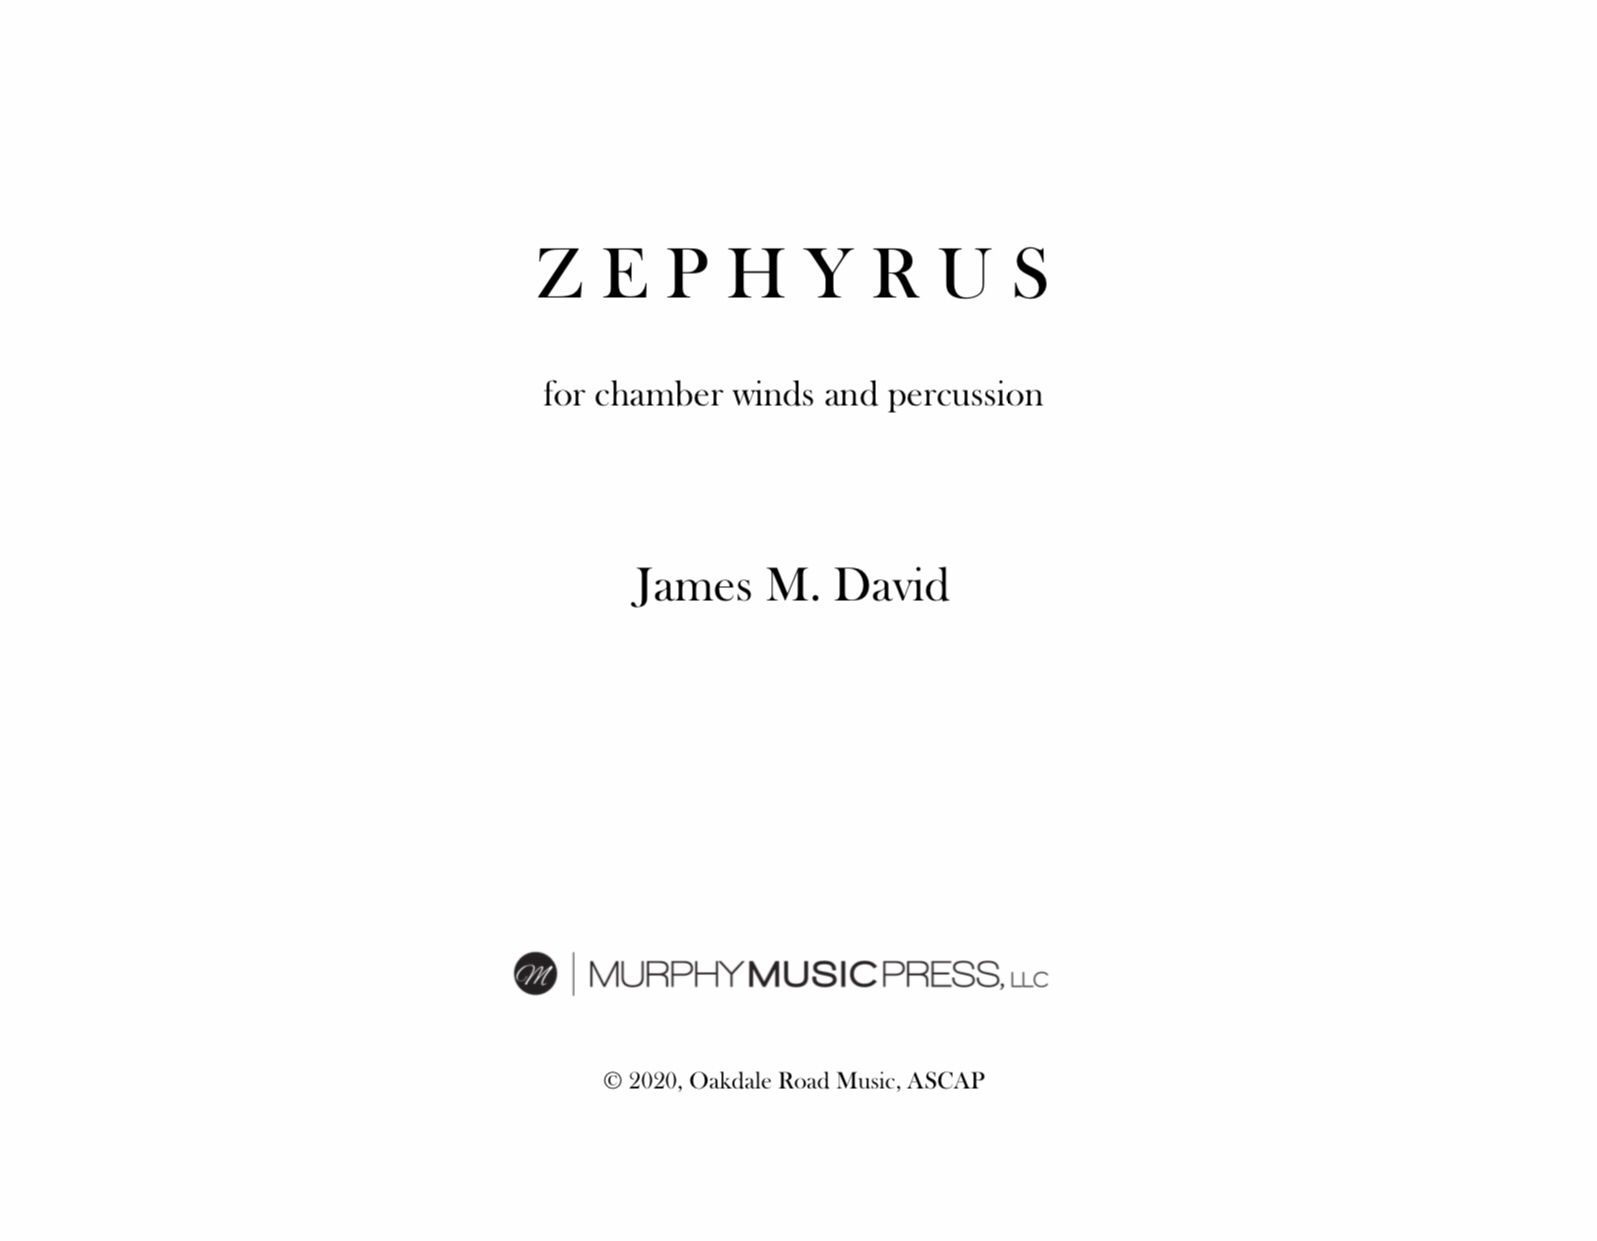 Zephyrus by James David